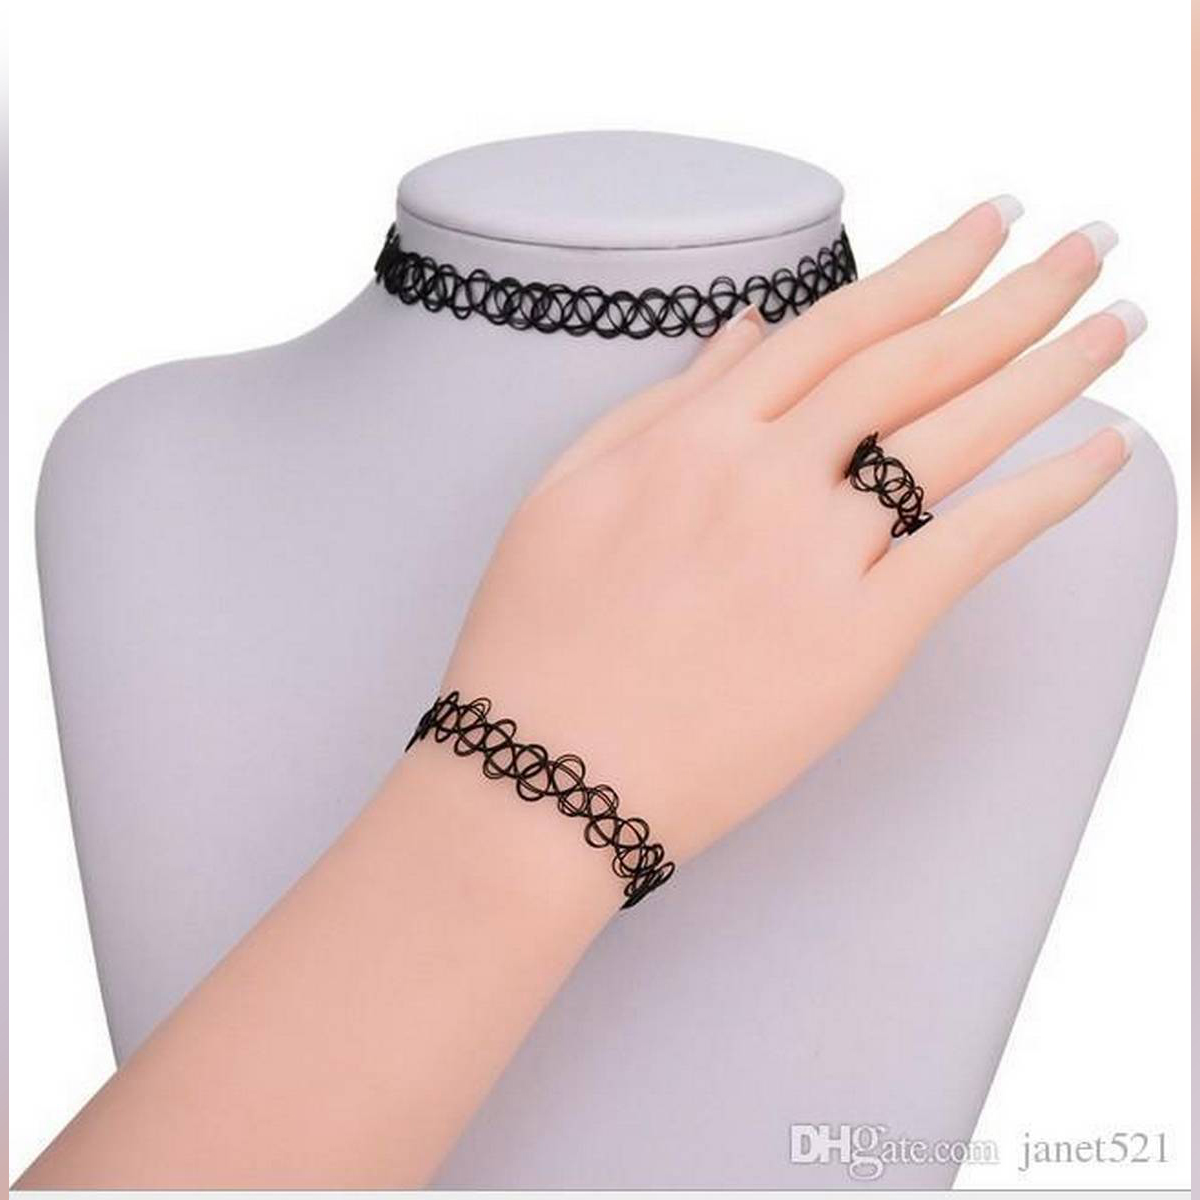 Thickly Intertwined Diamond Chokers - Black -Attractive